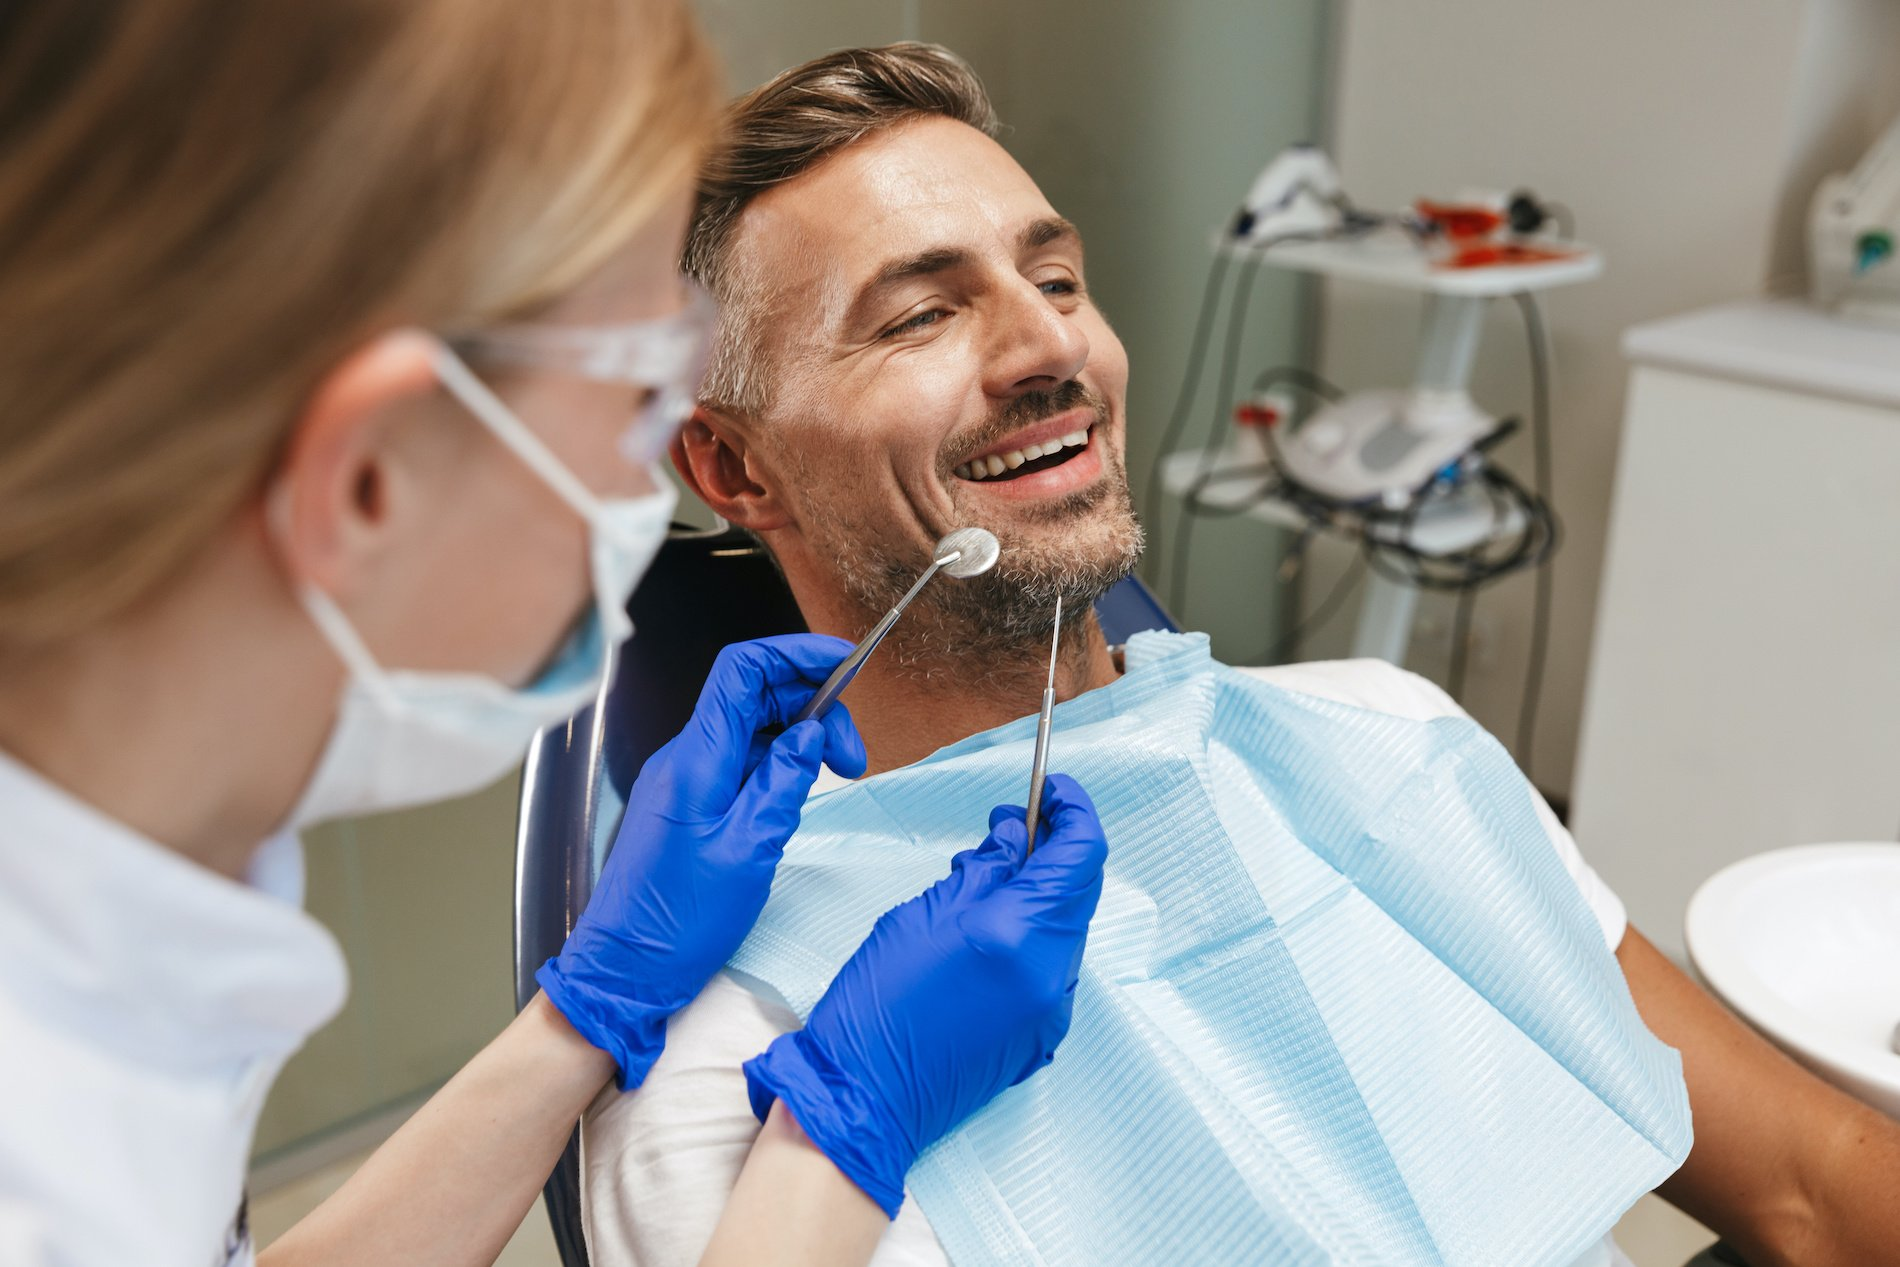 Gum Disease Management Solutions by PRECiDENT.health